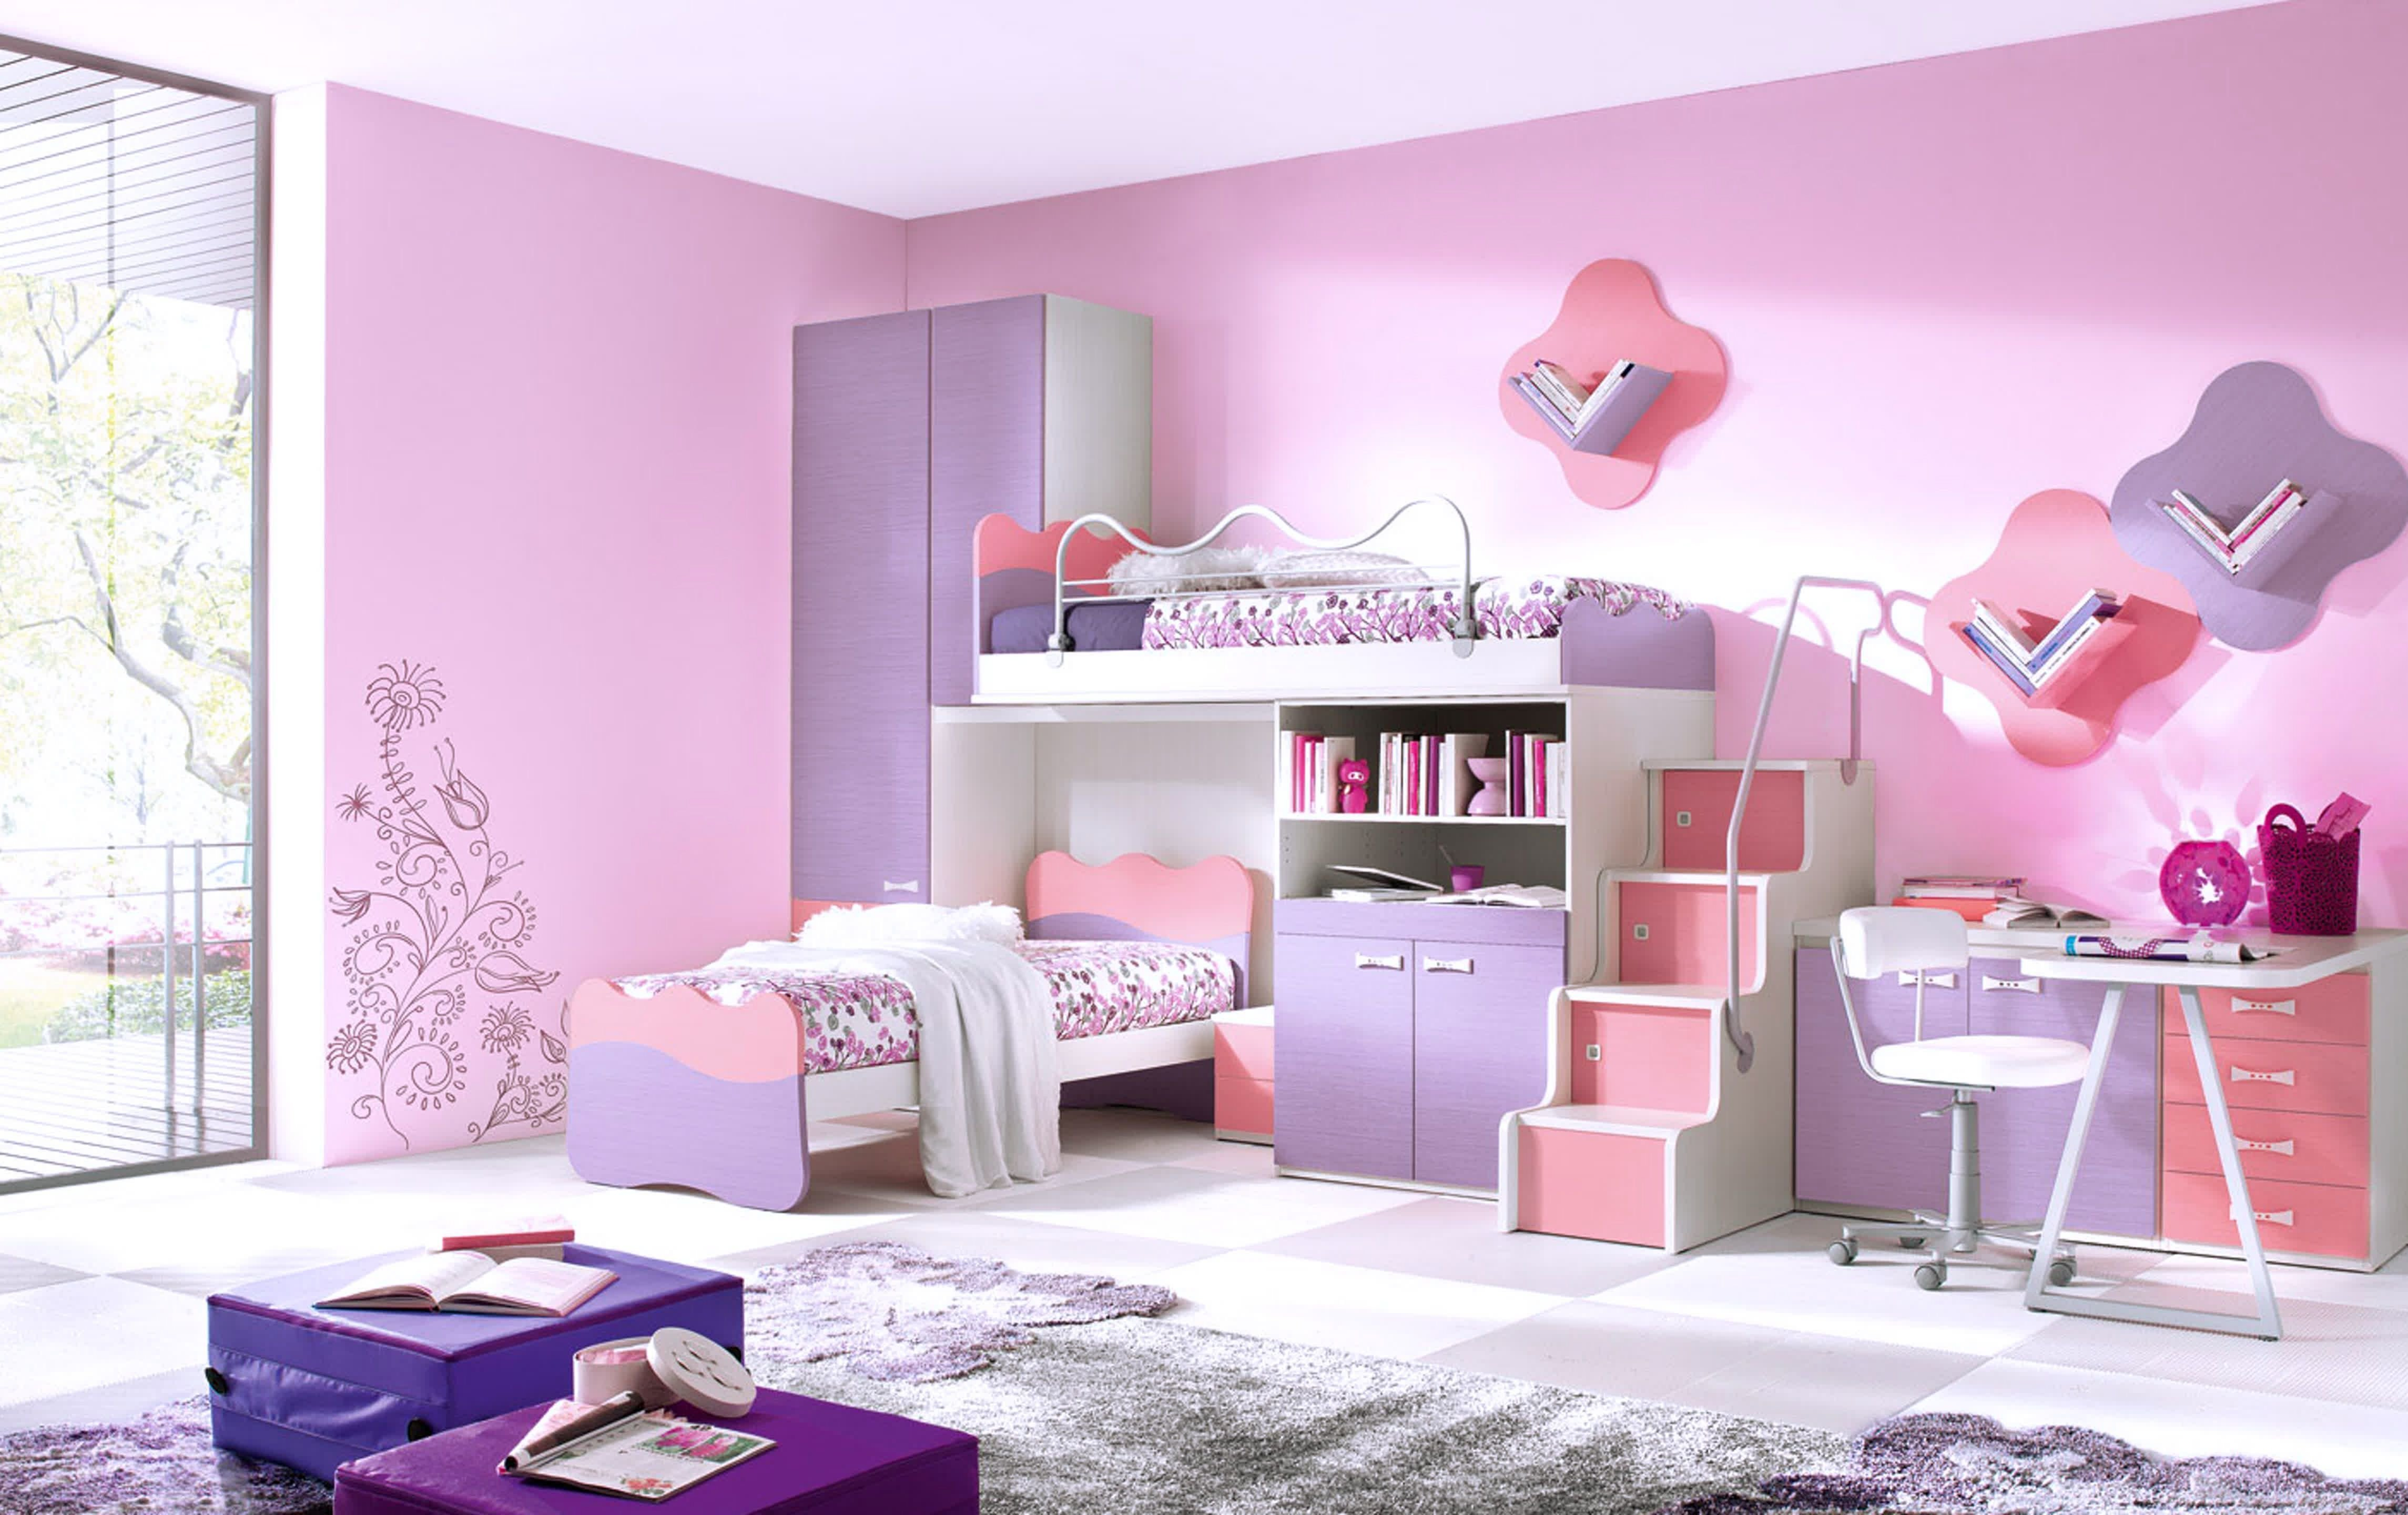 Minnie Mouse Bedroom Ideas Awesome 35 Pink Girly Bedroom Color Schemes that Will Make